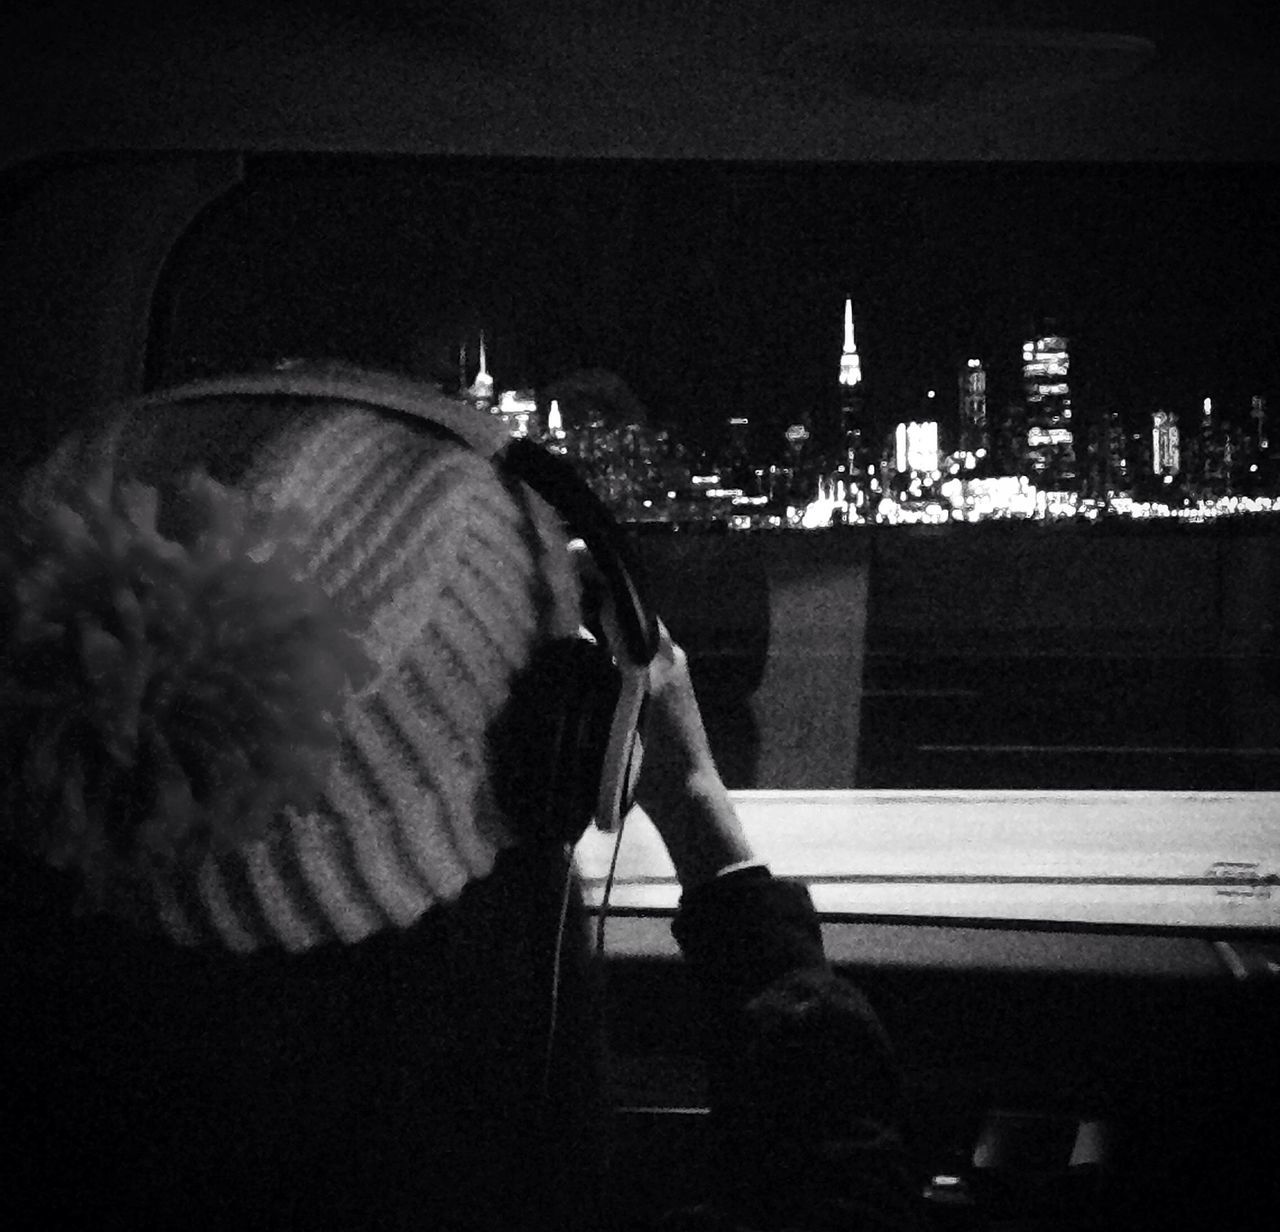 Catching New York City at night, coming home from Philadelphia - my daughter was mesmerized The Drive Photography Themes Real People My Year My View City Night Mesmerized Riding New York City Lights Amazed Teenager Taking Photo Car Seat Backseat TakeoverMusic Different Perspective Black And White Observer Enjoying Life Urban Exhilarating Happy Movement Highway